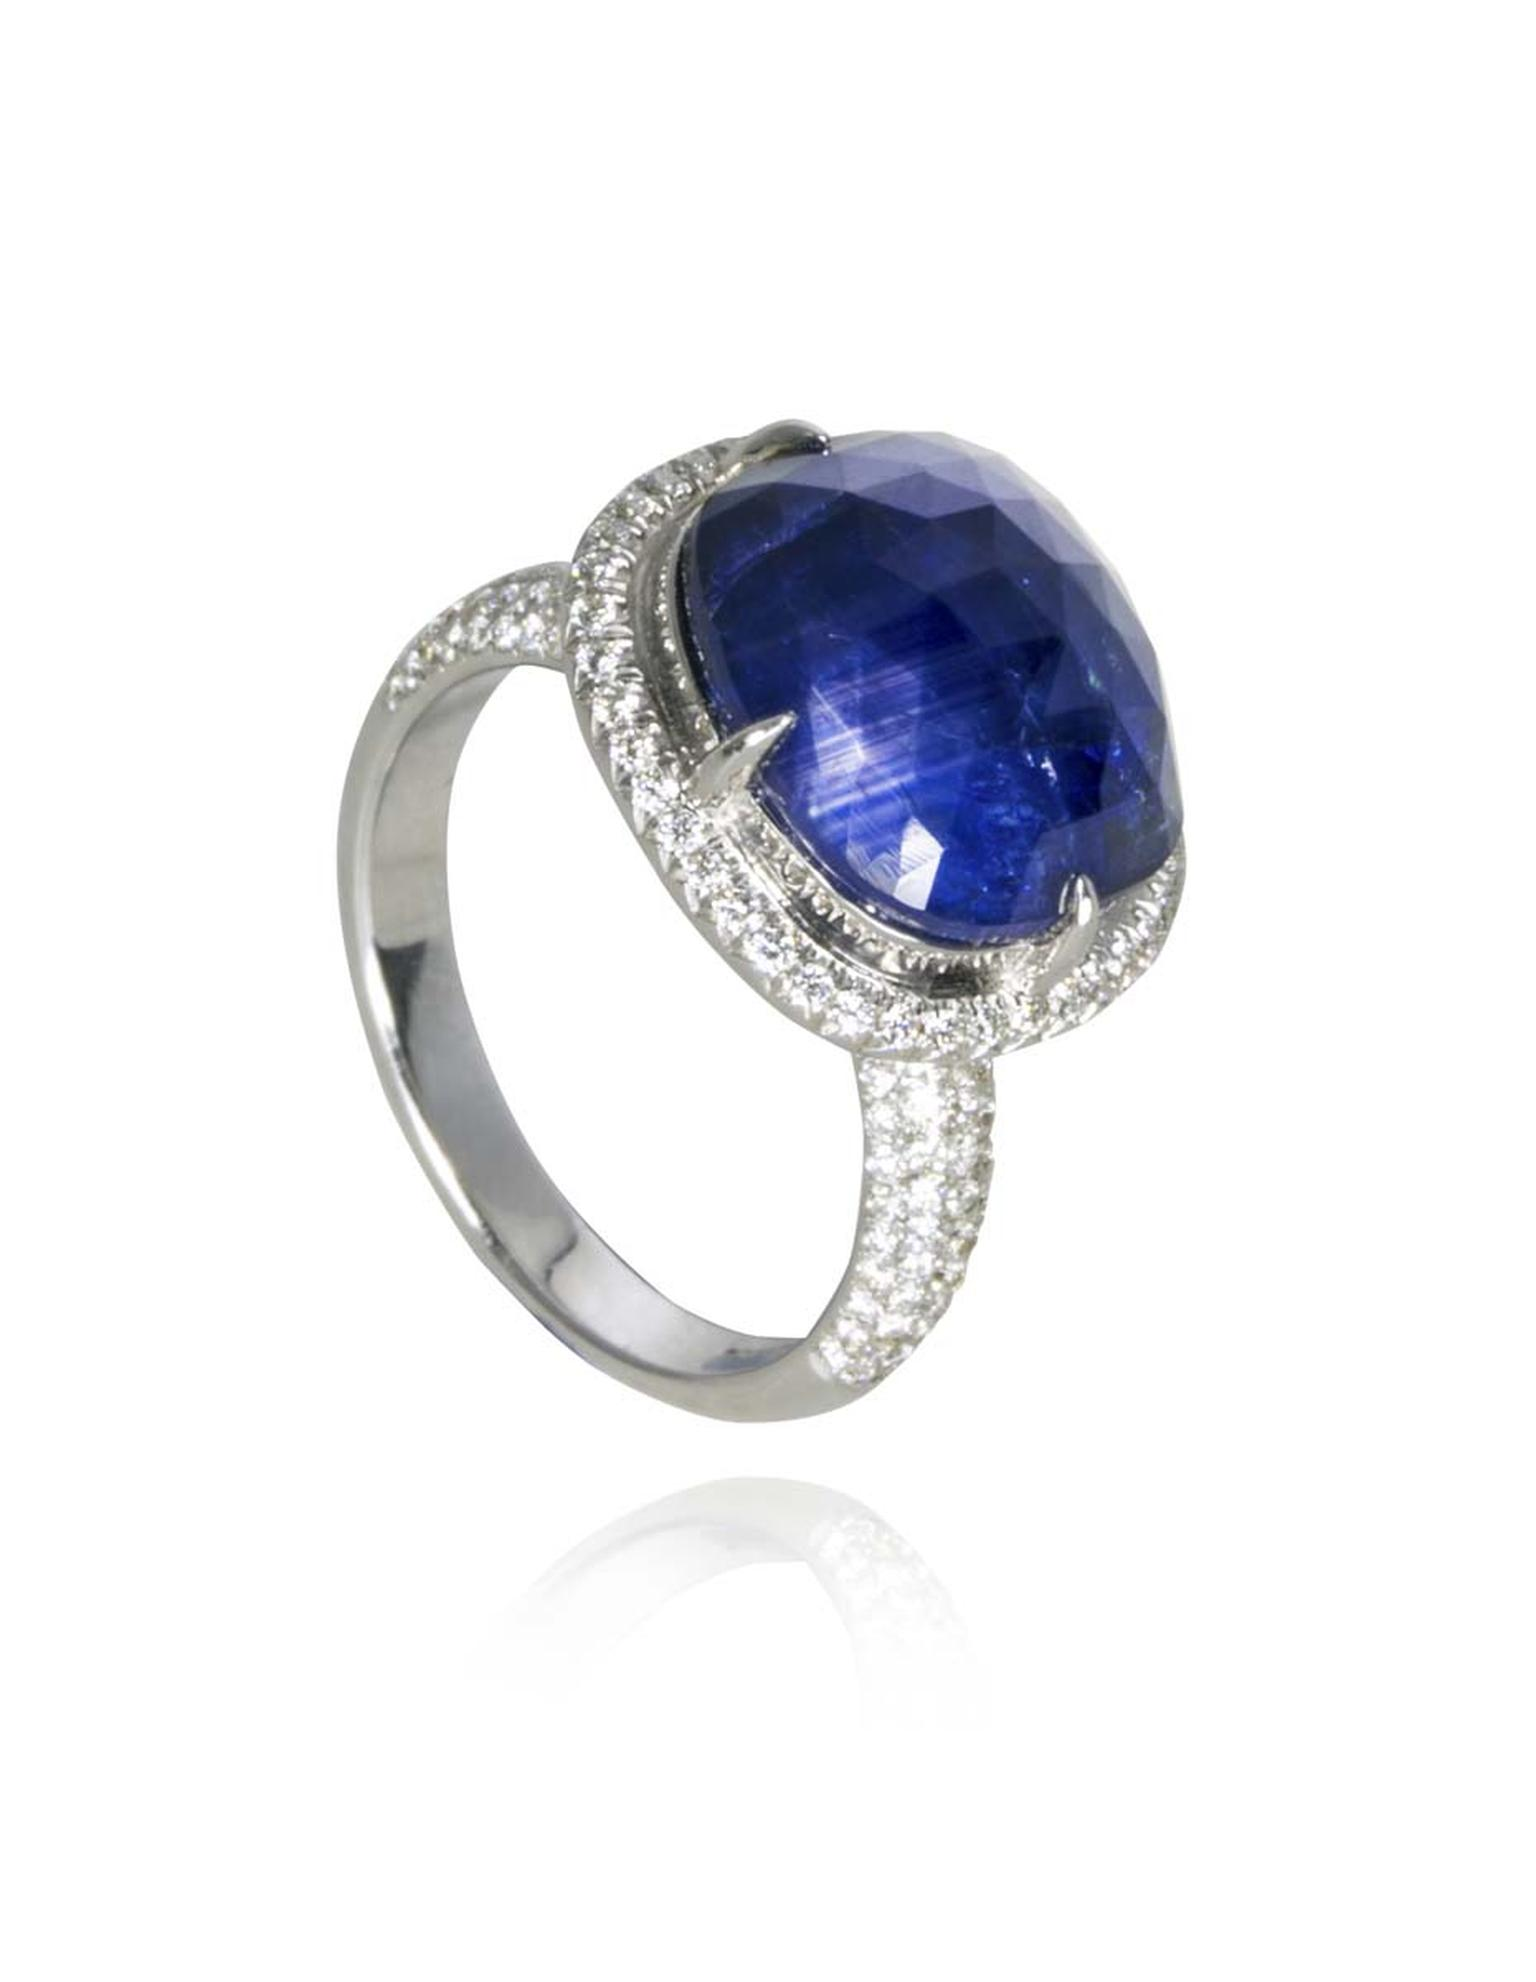 The blue sapphire in this Amrapali engagement ring packs a colourful punch in a setting that emphasises the stone's bulbous shape and its rich indigo hue.